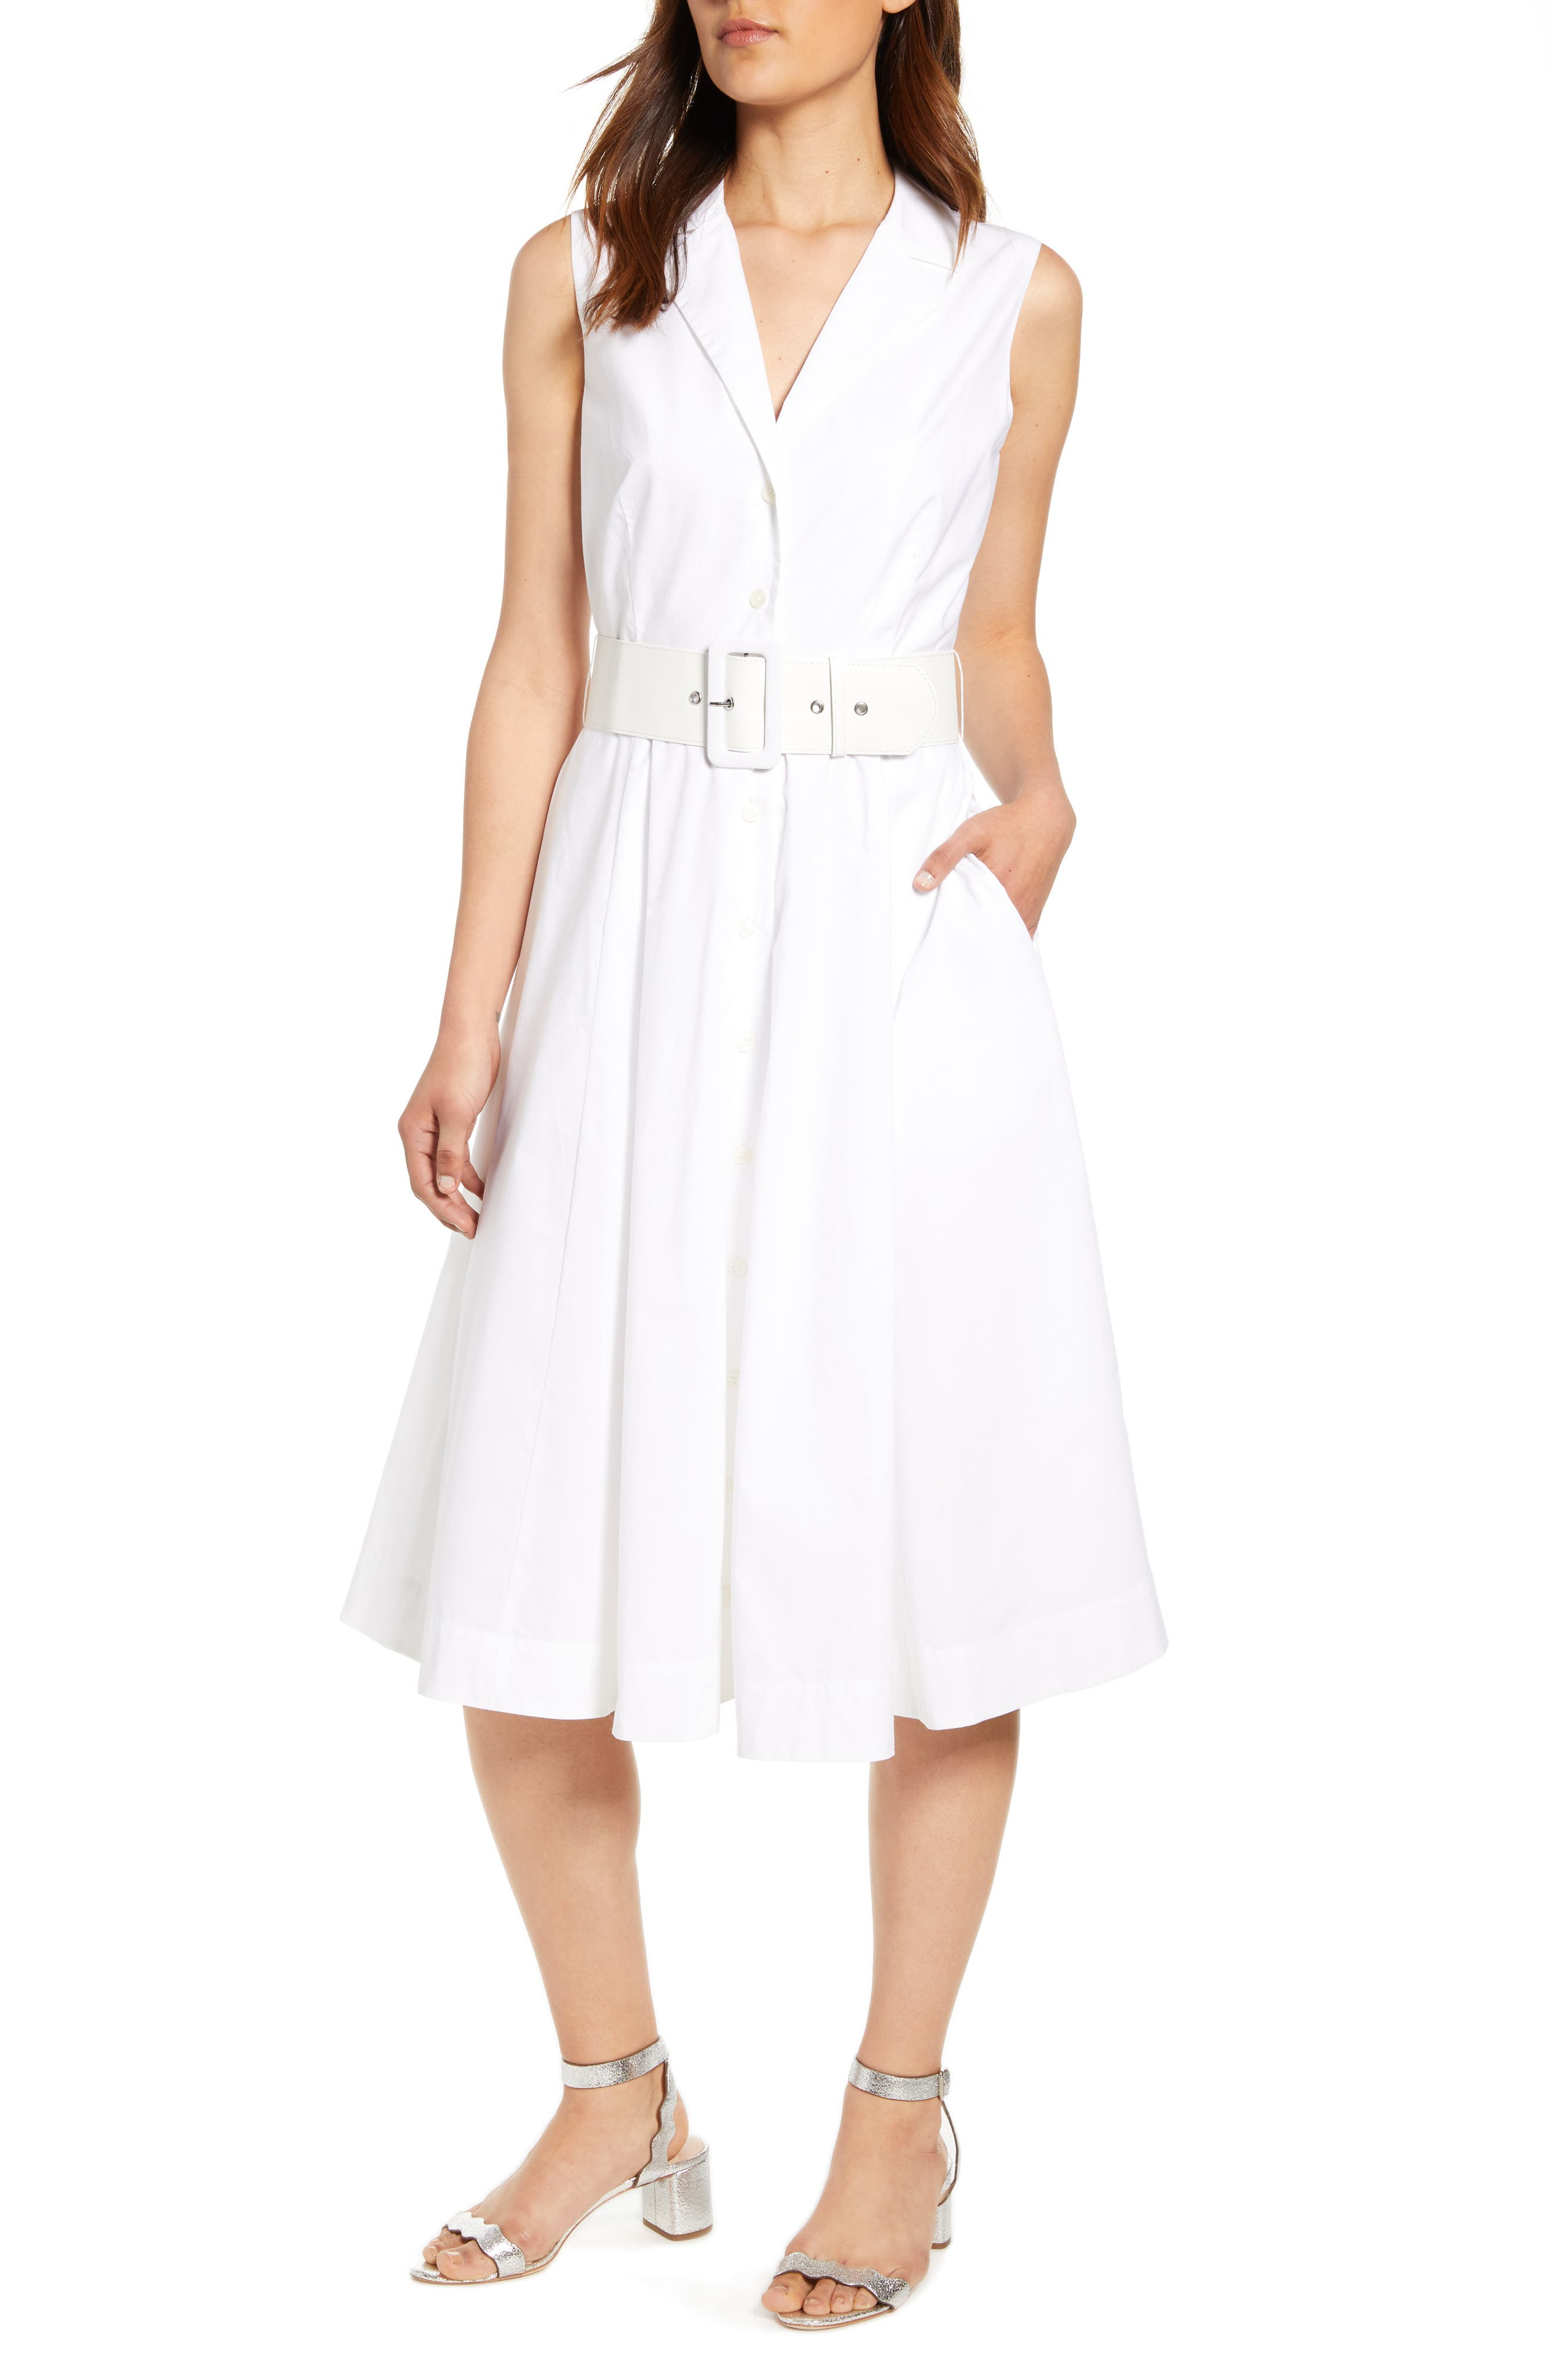 J.crew Sleeveless A-Line Shirtdress With Removable Belt, White